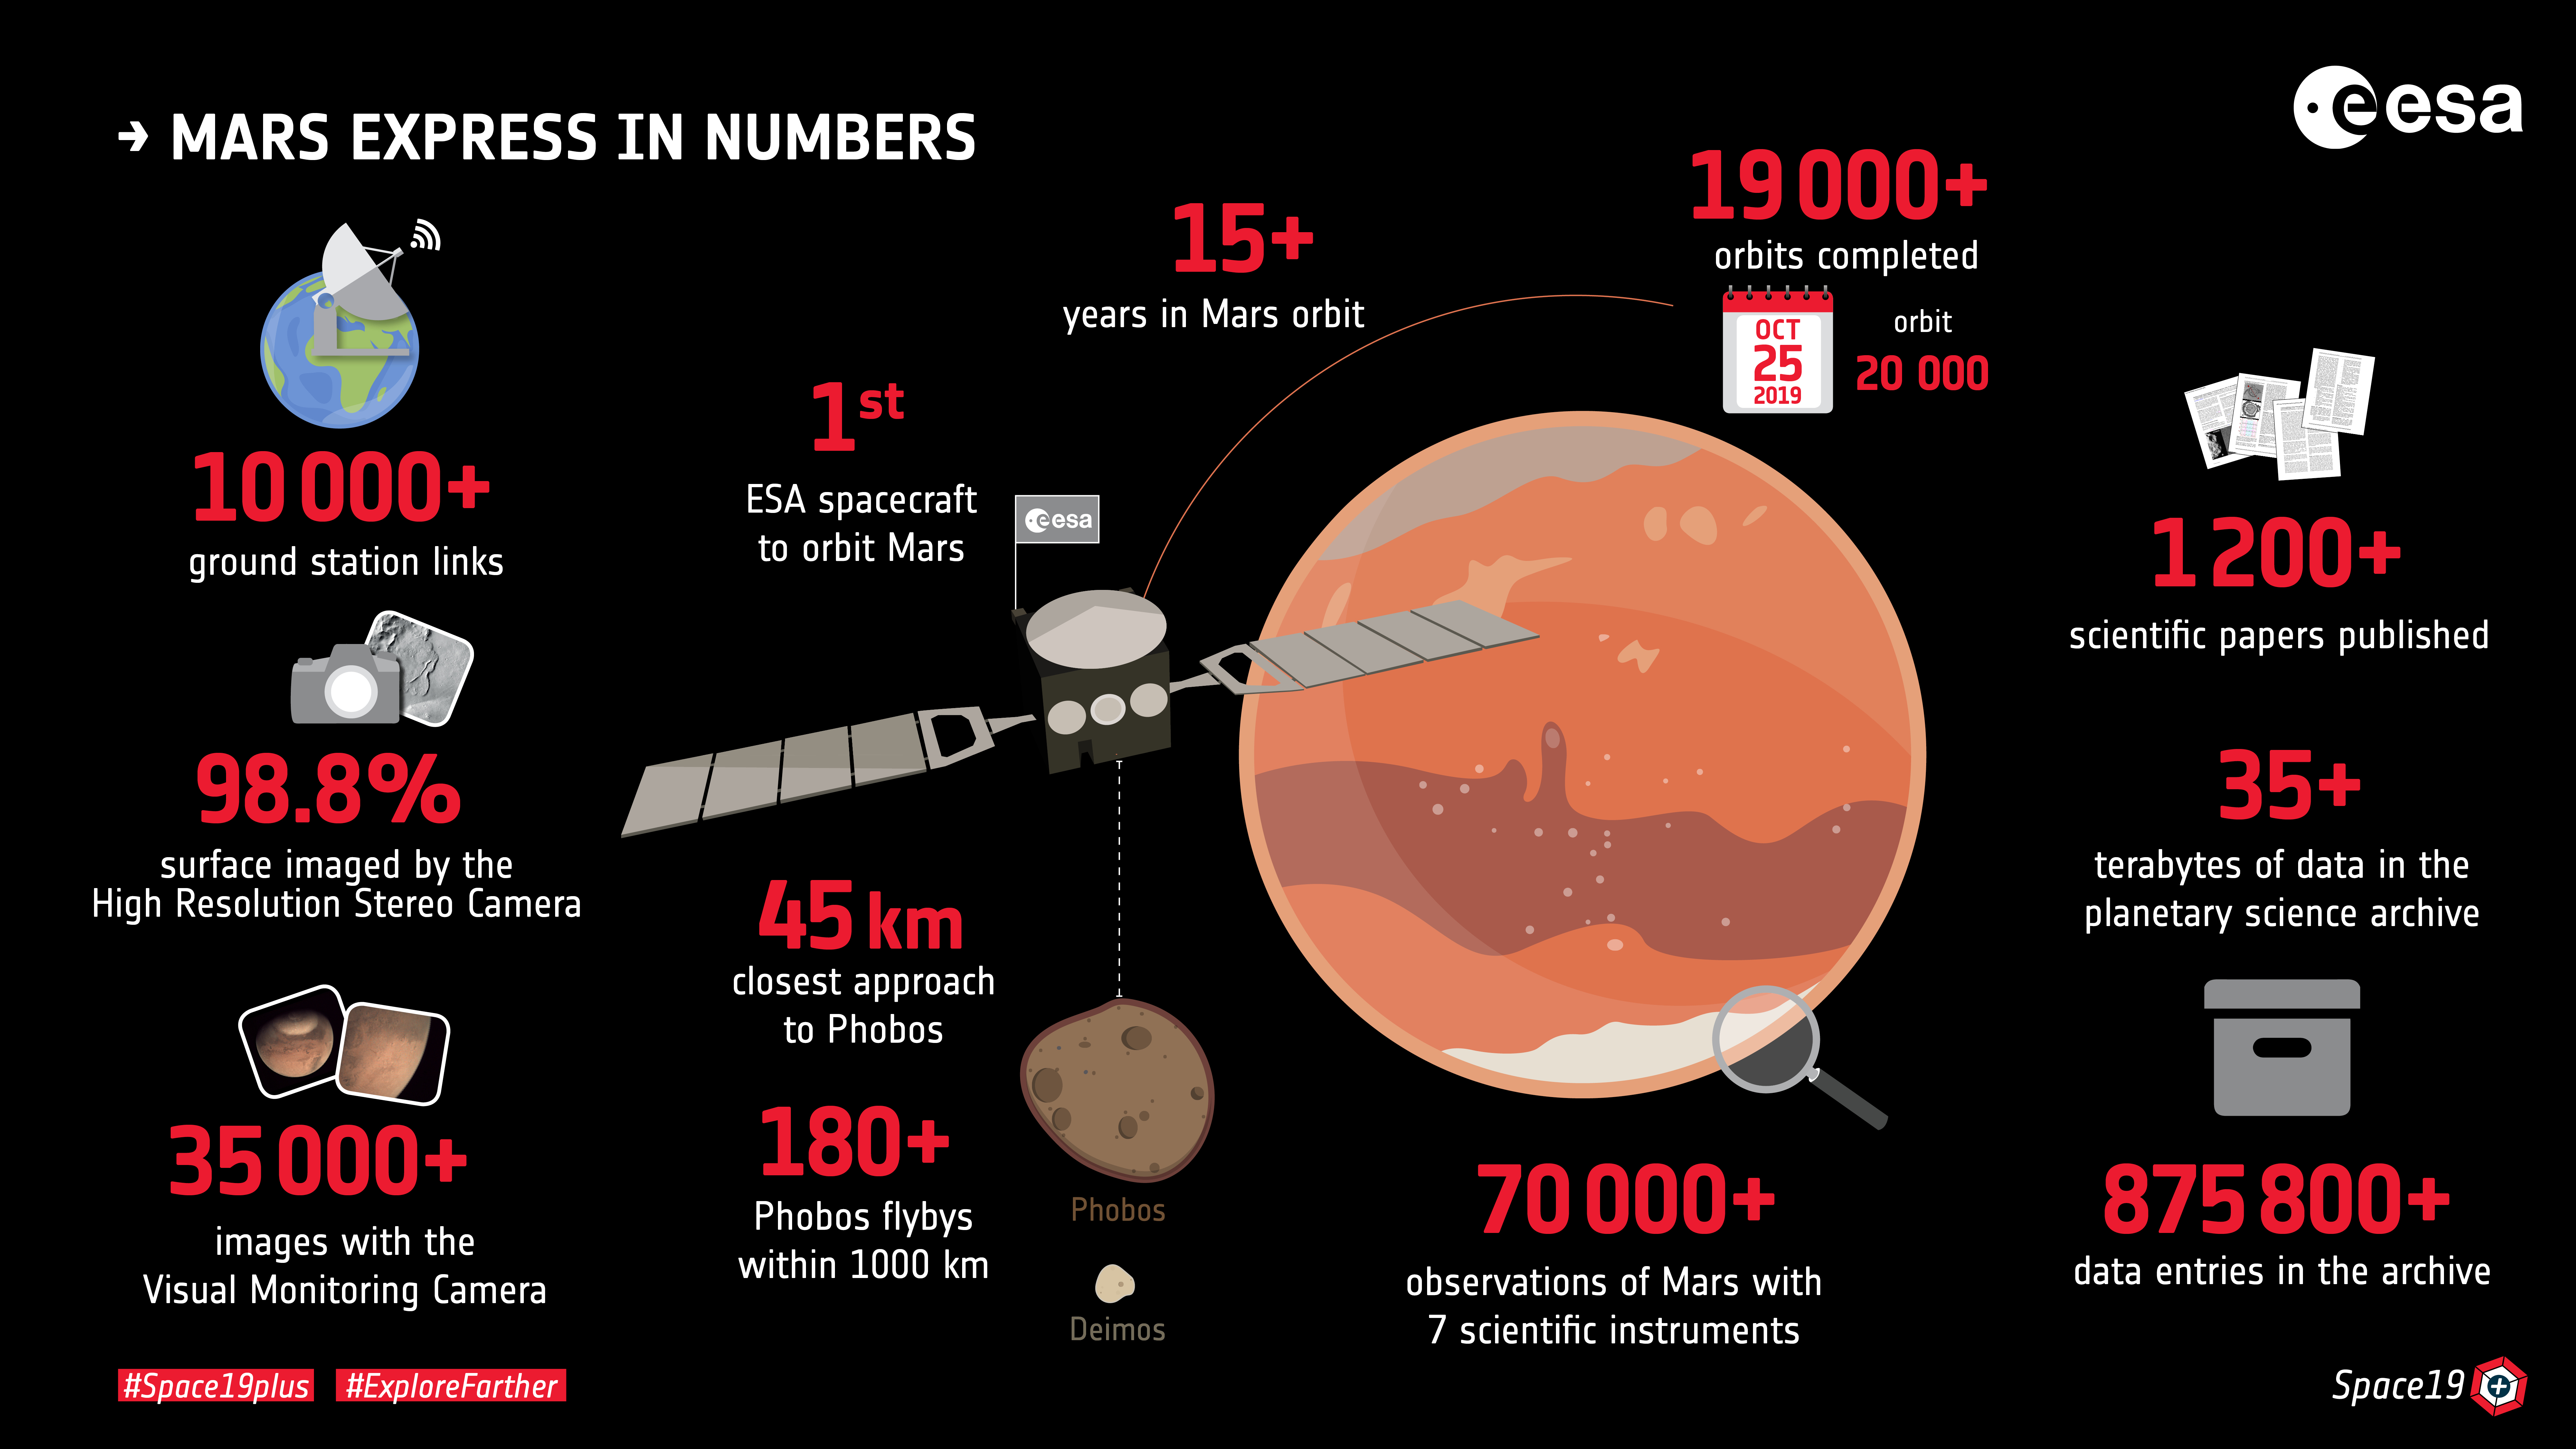 1567214004334-Mars_Express_in_numbers_2019.jpg